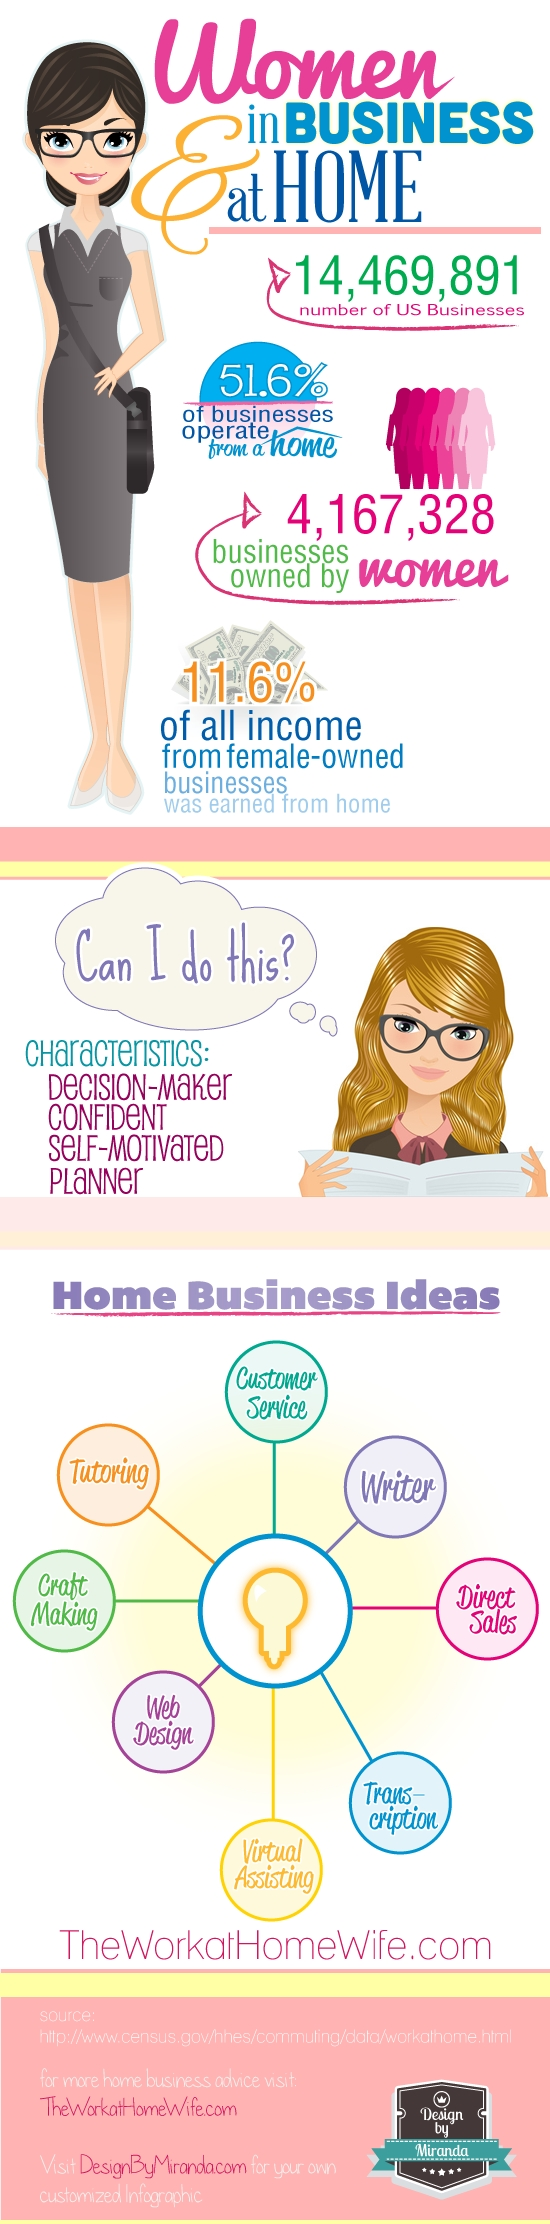 women in home-based business: infographic | infographic, business